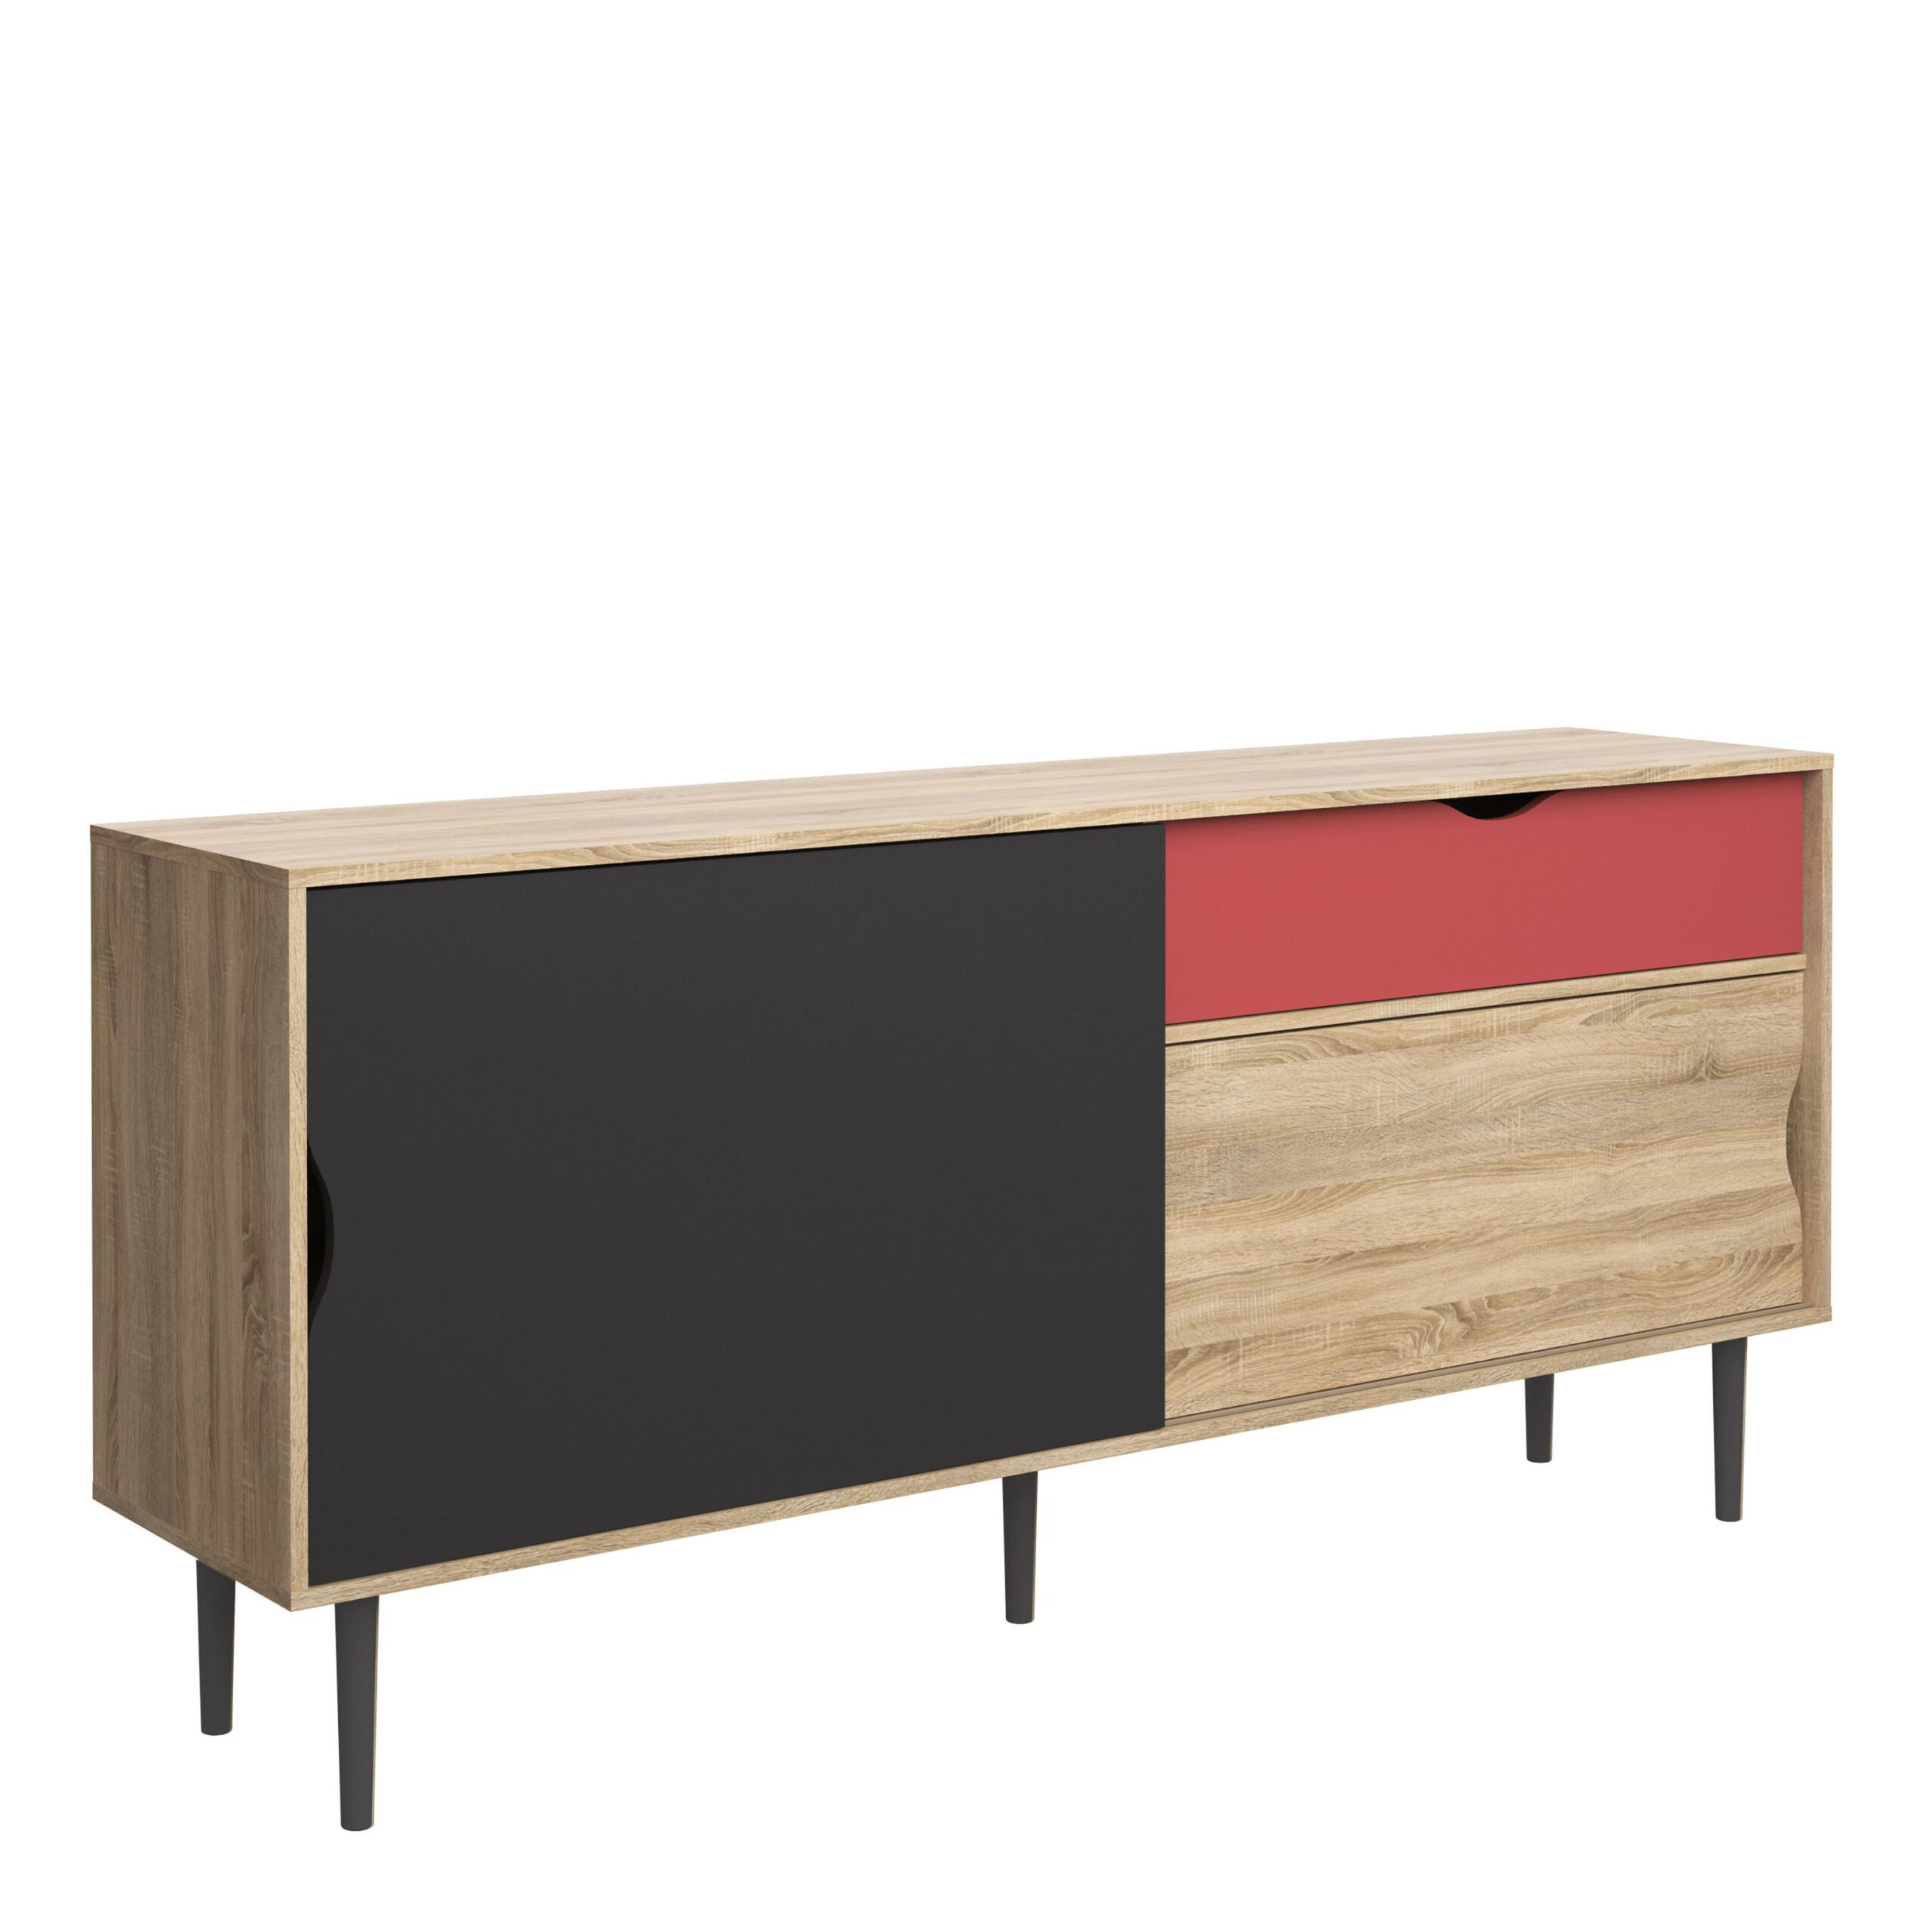 Unity Sideboard 1 Drawer w/ Sliding Doors in Oak with Dark Grey and Teracotta